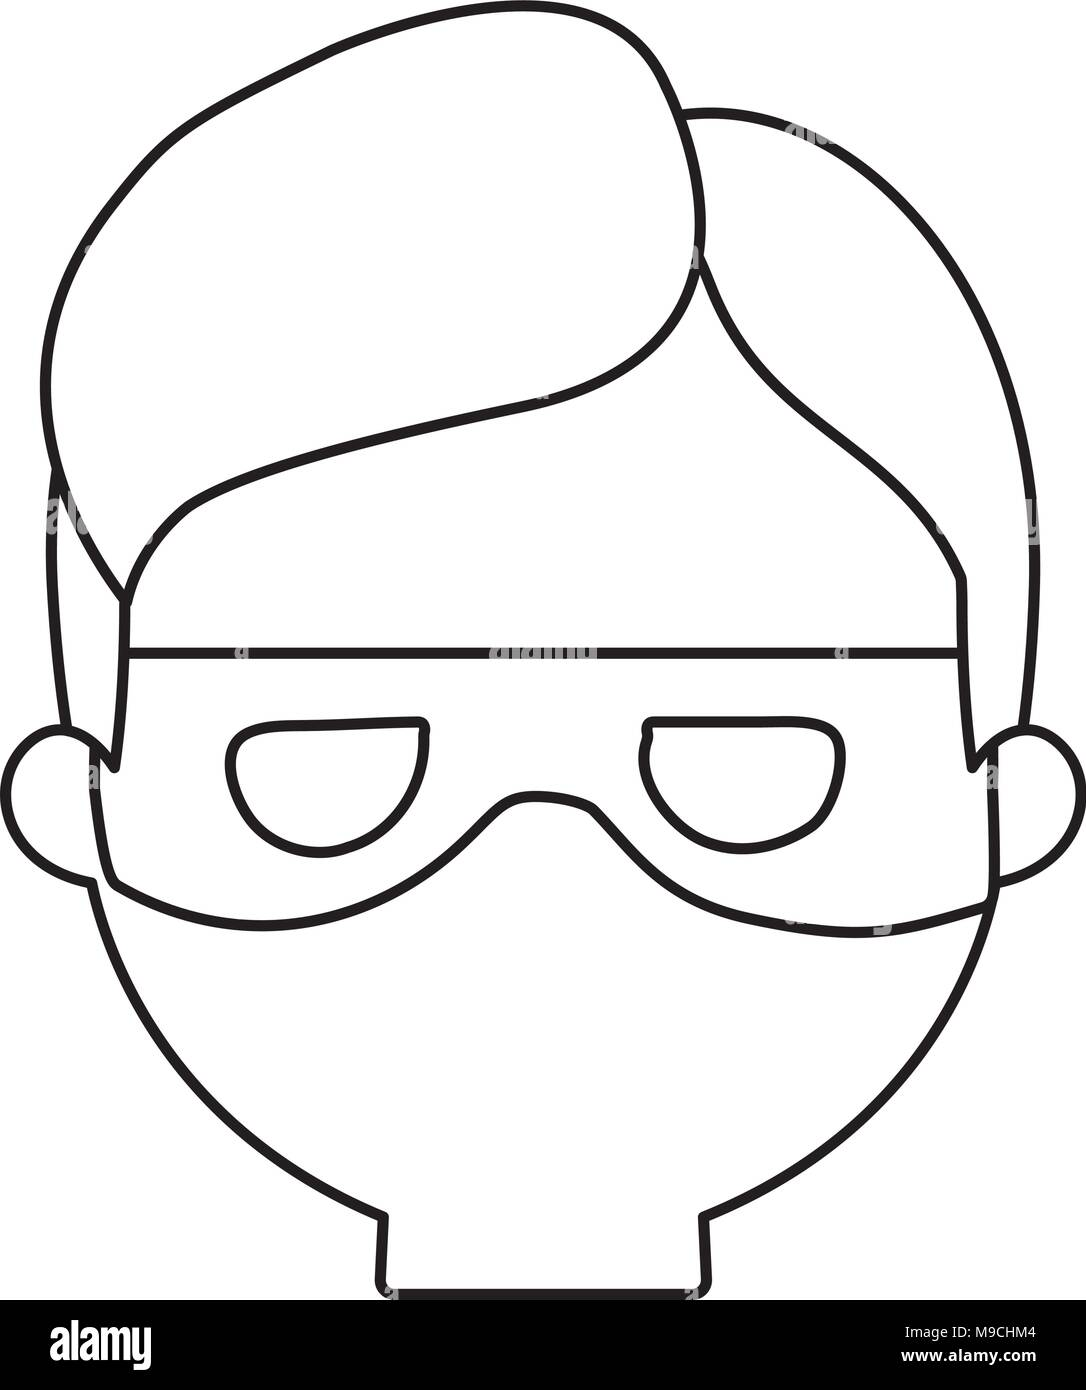 cartoon thief face icon over white background, vector illustration - Stock Image